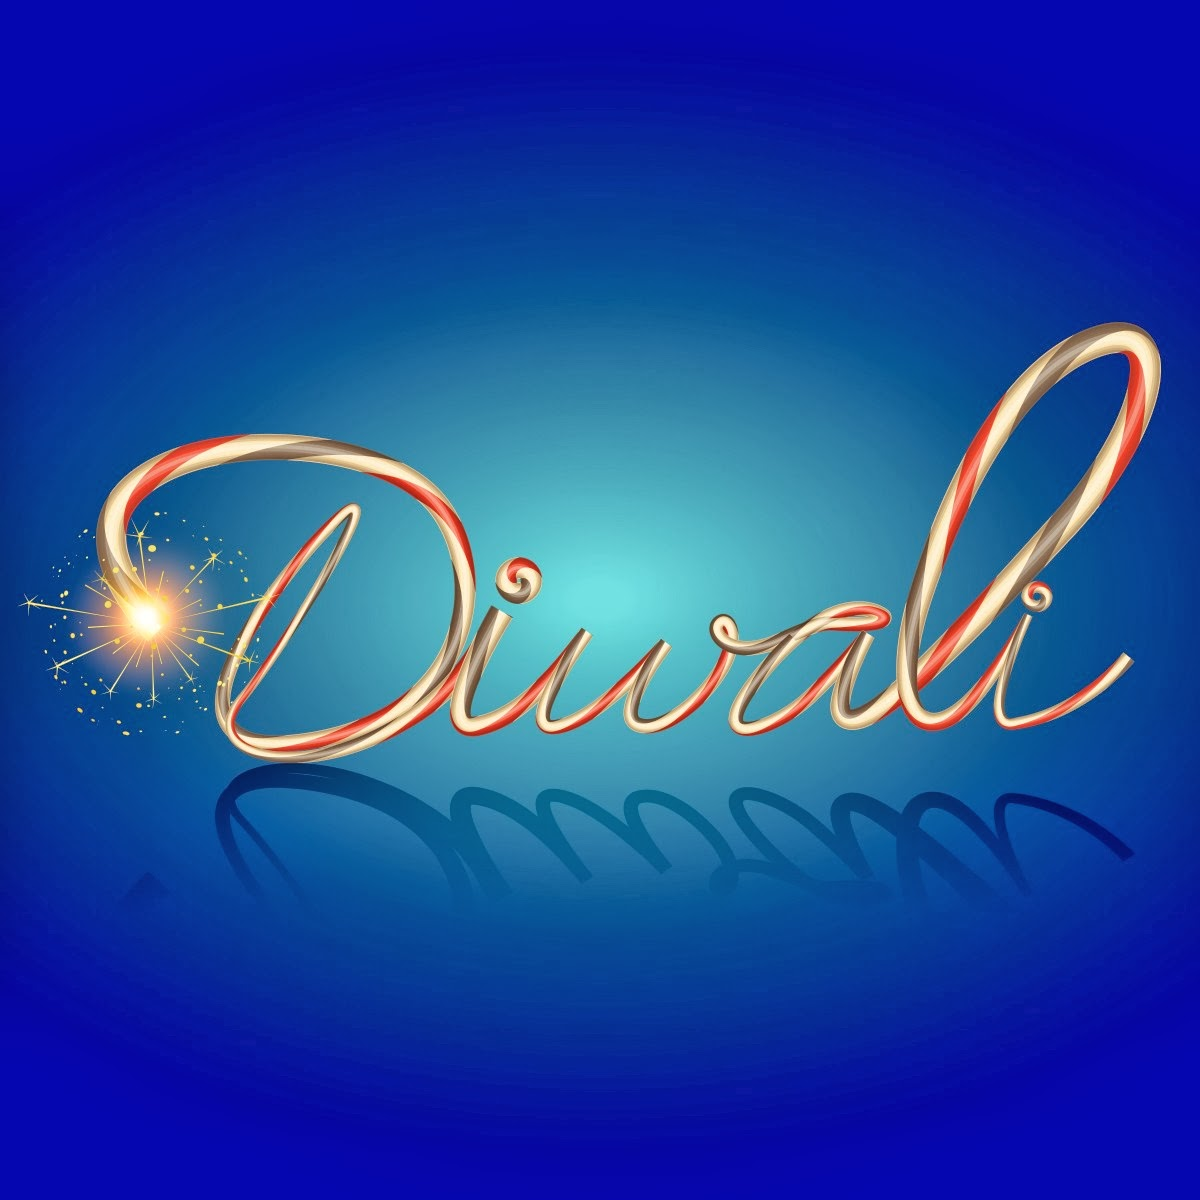 Diwali Greetings: Let's Diwali Wishes & Happy New Year ...